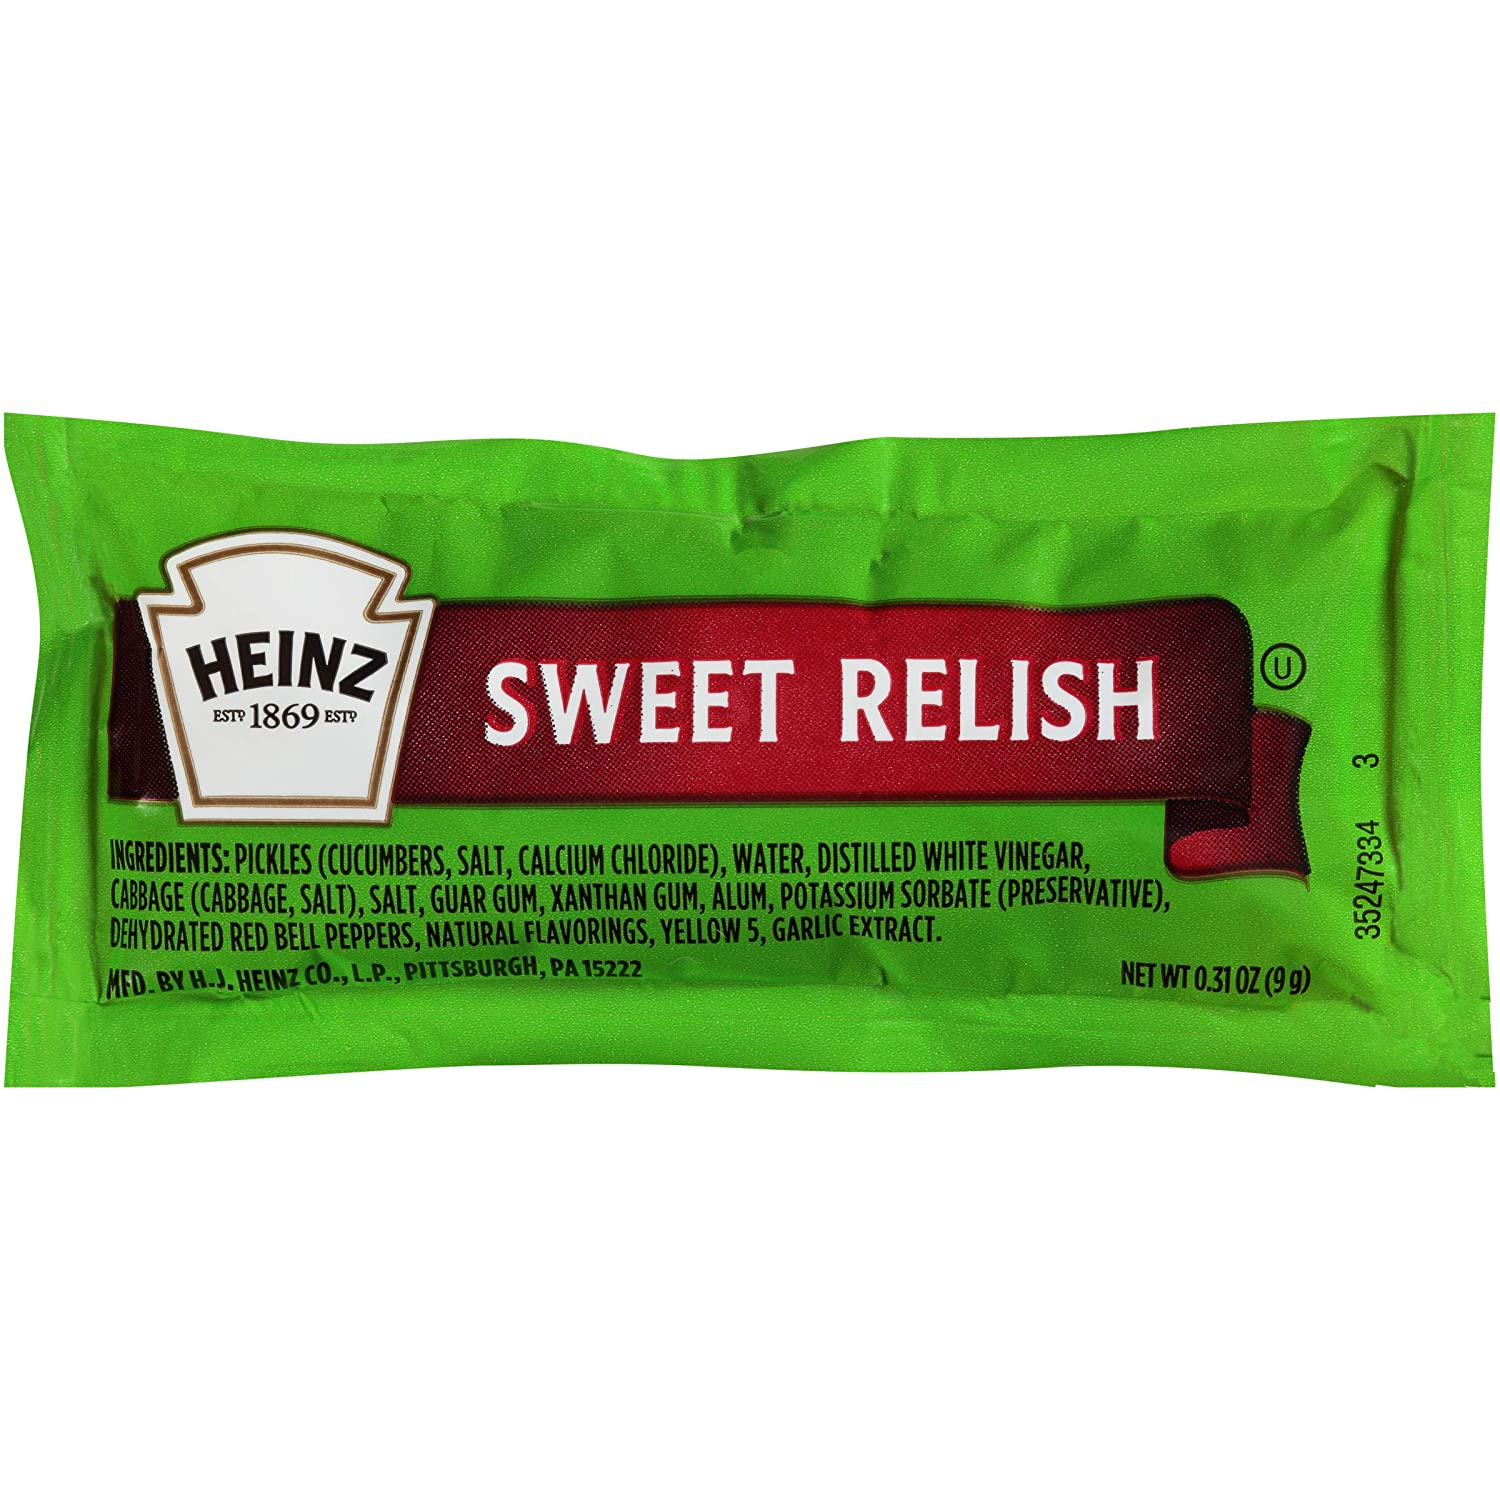 Heinz Sweet Relish Single Serve Packets (200 ct Pack)